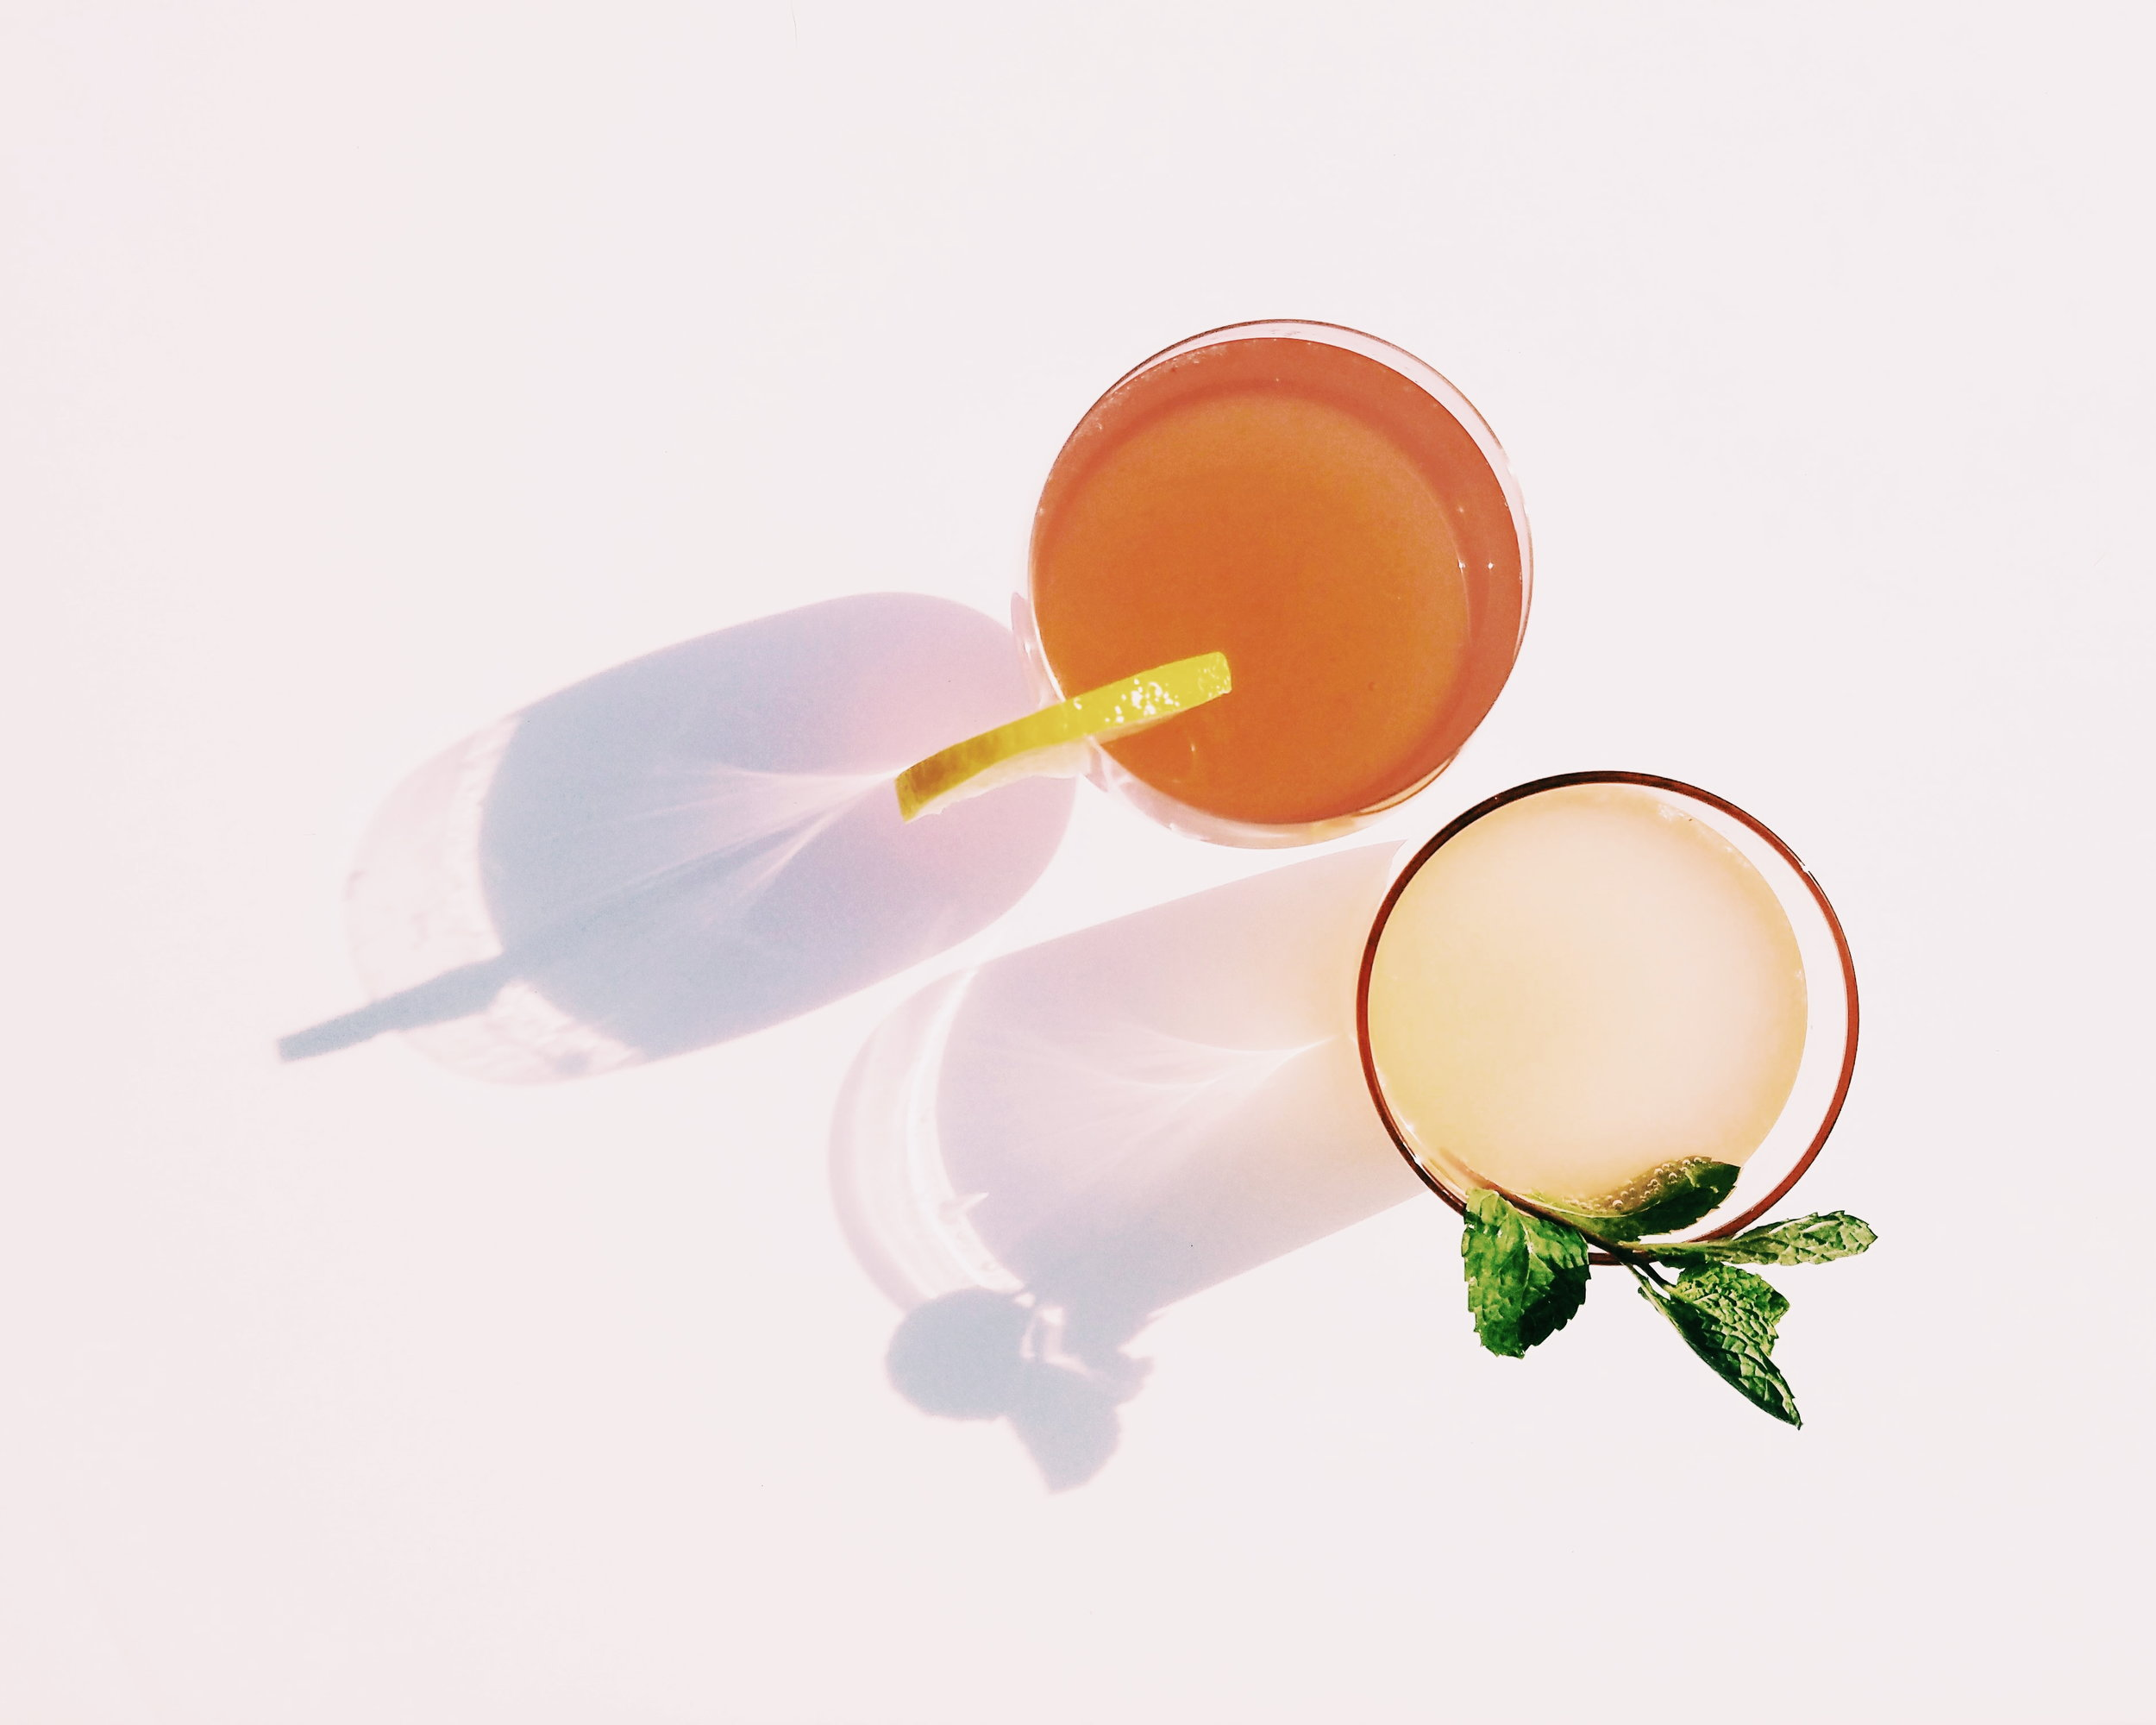 Recipe - 1 Shot of Floral Gin (Bouck Bros)1 splash of mint syrup1/2 squeezed lemontop off with your favorite grapefruit sparkling waterBonus Tip: try a new flavored spritz - mix up for a seasonal taste!